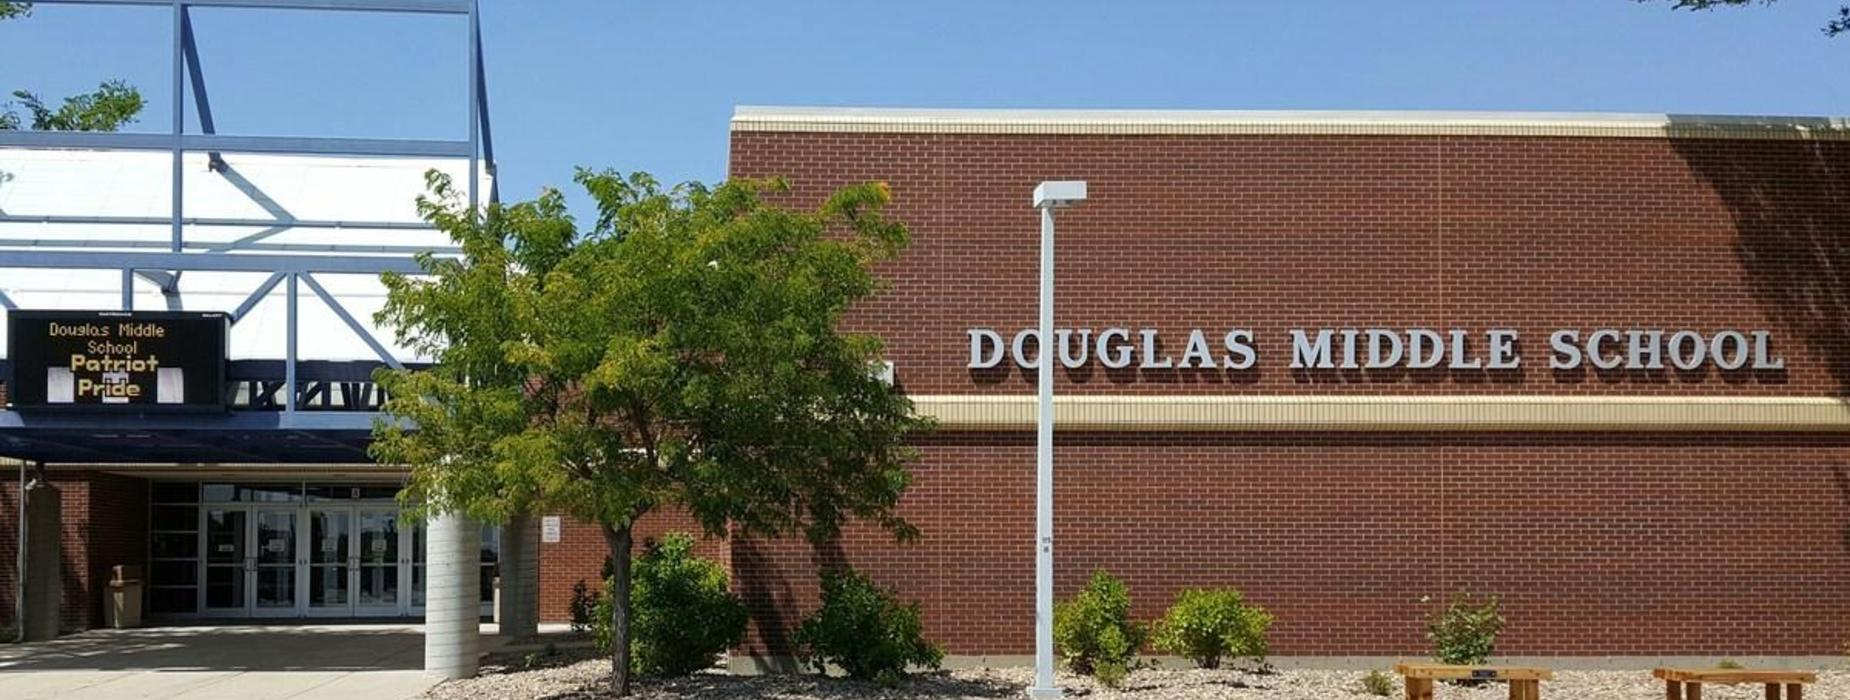 Douglas Middle School